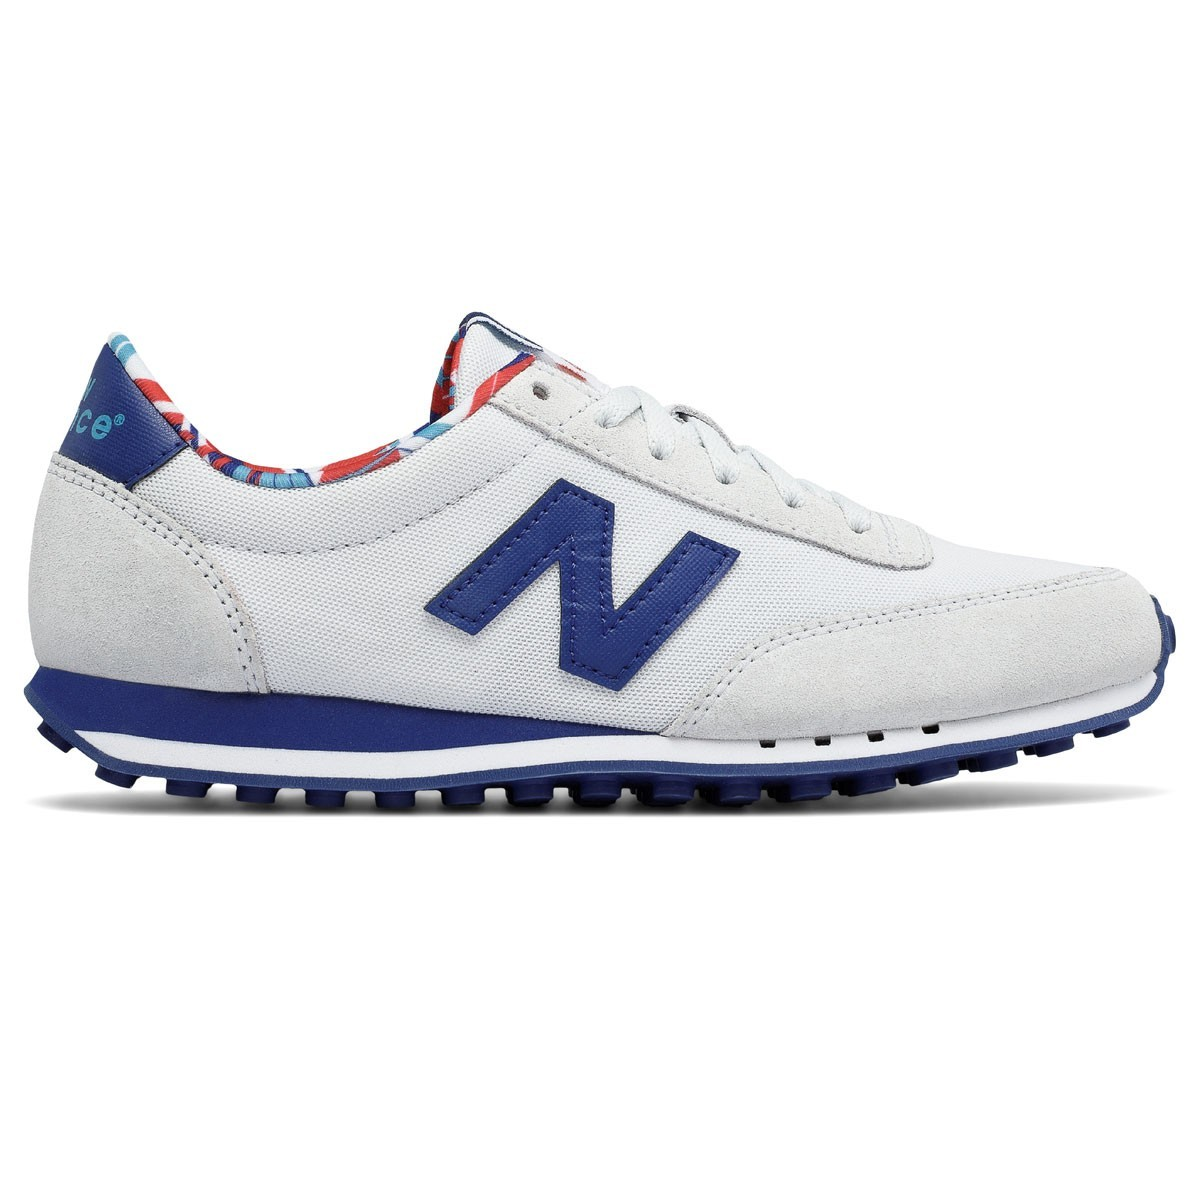 New Balance Wl410 zapatillas